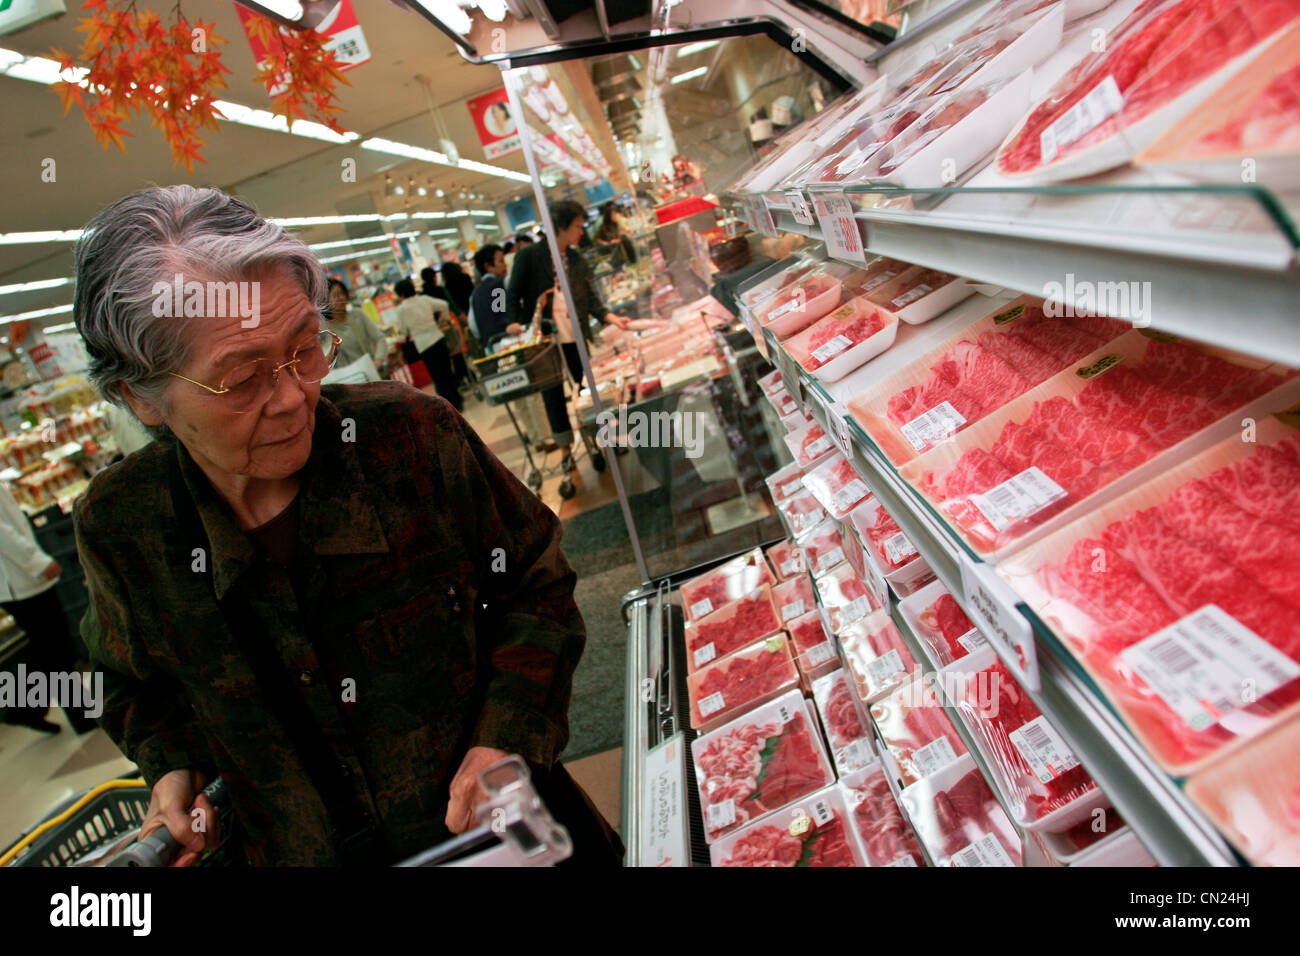 An elderly customer looks at packages of Wagyu beef at a branch of Uny Supermarket in Nagoya, Japan. - Stock Image